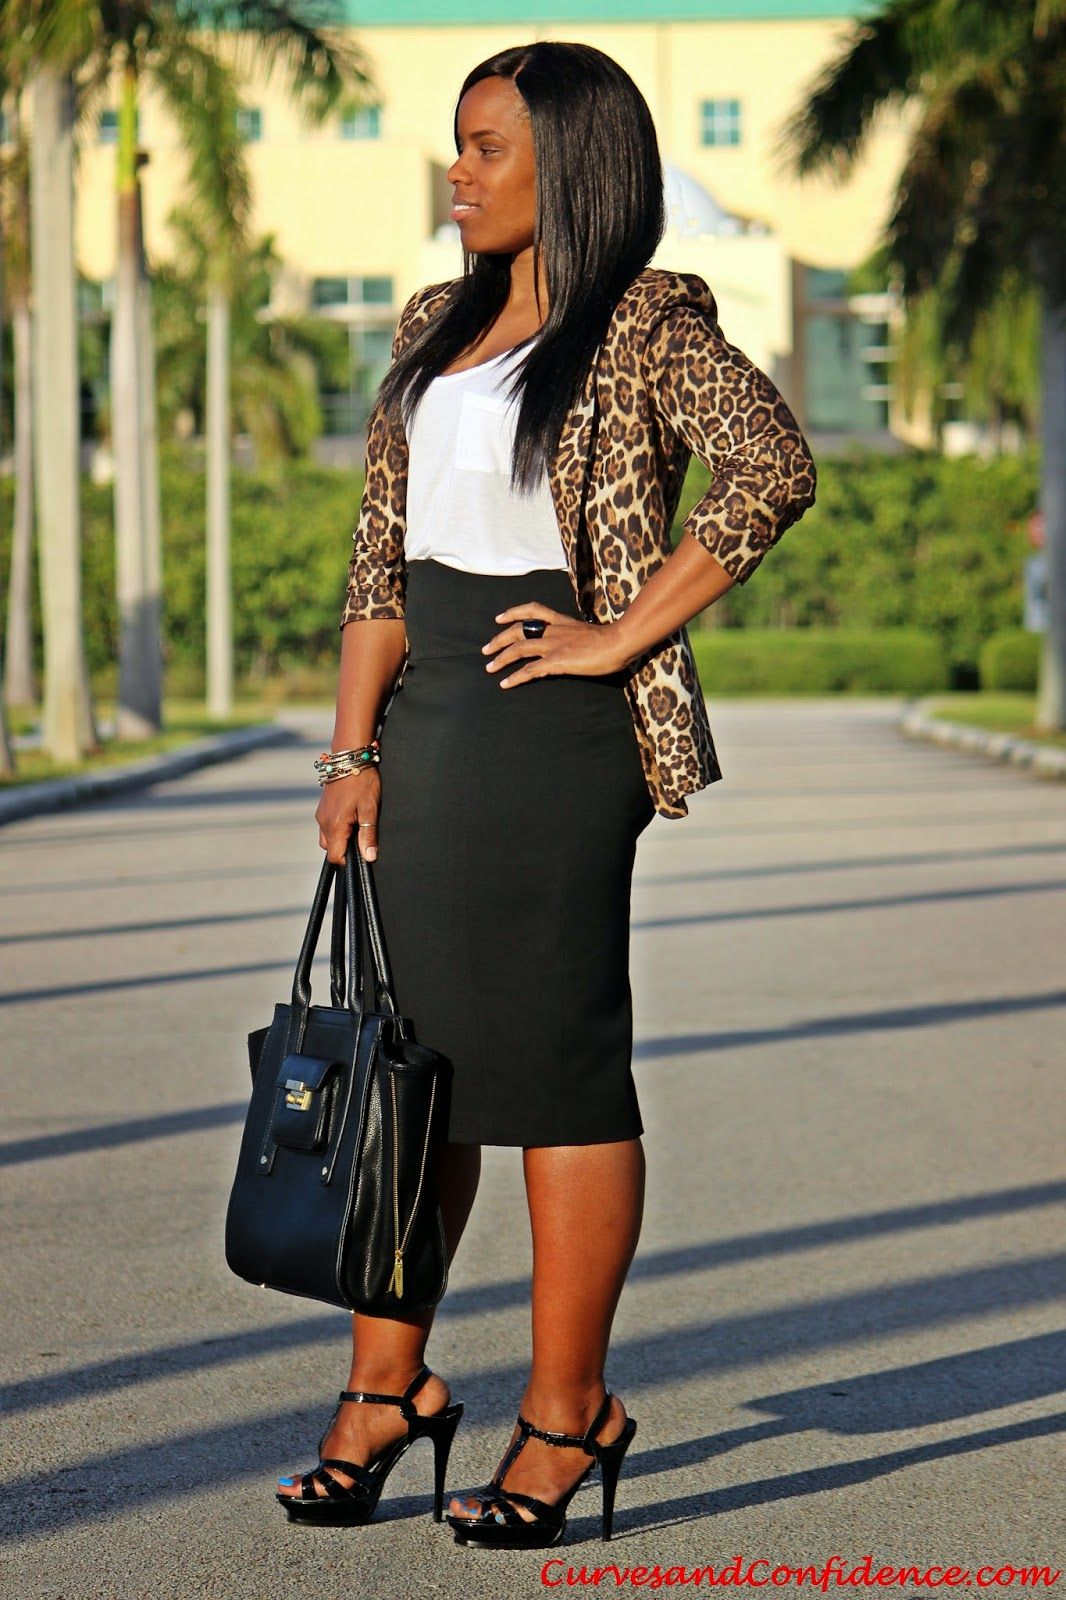 Black Amp Leopard Fashion Curves Confidence Style